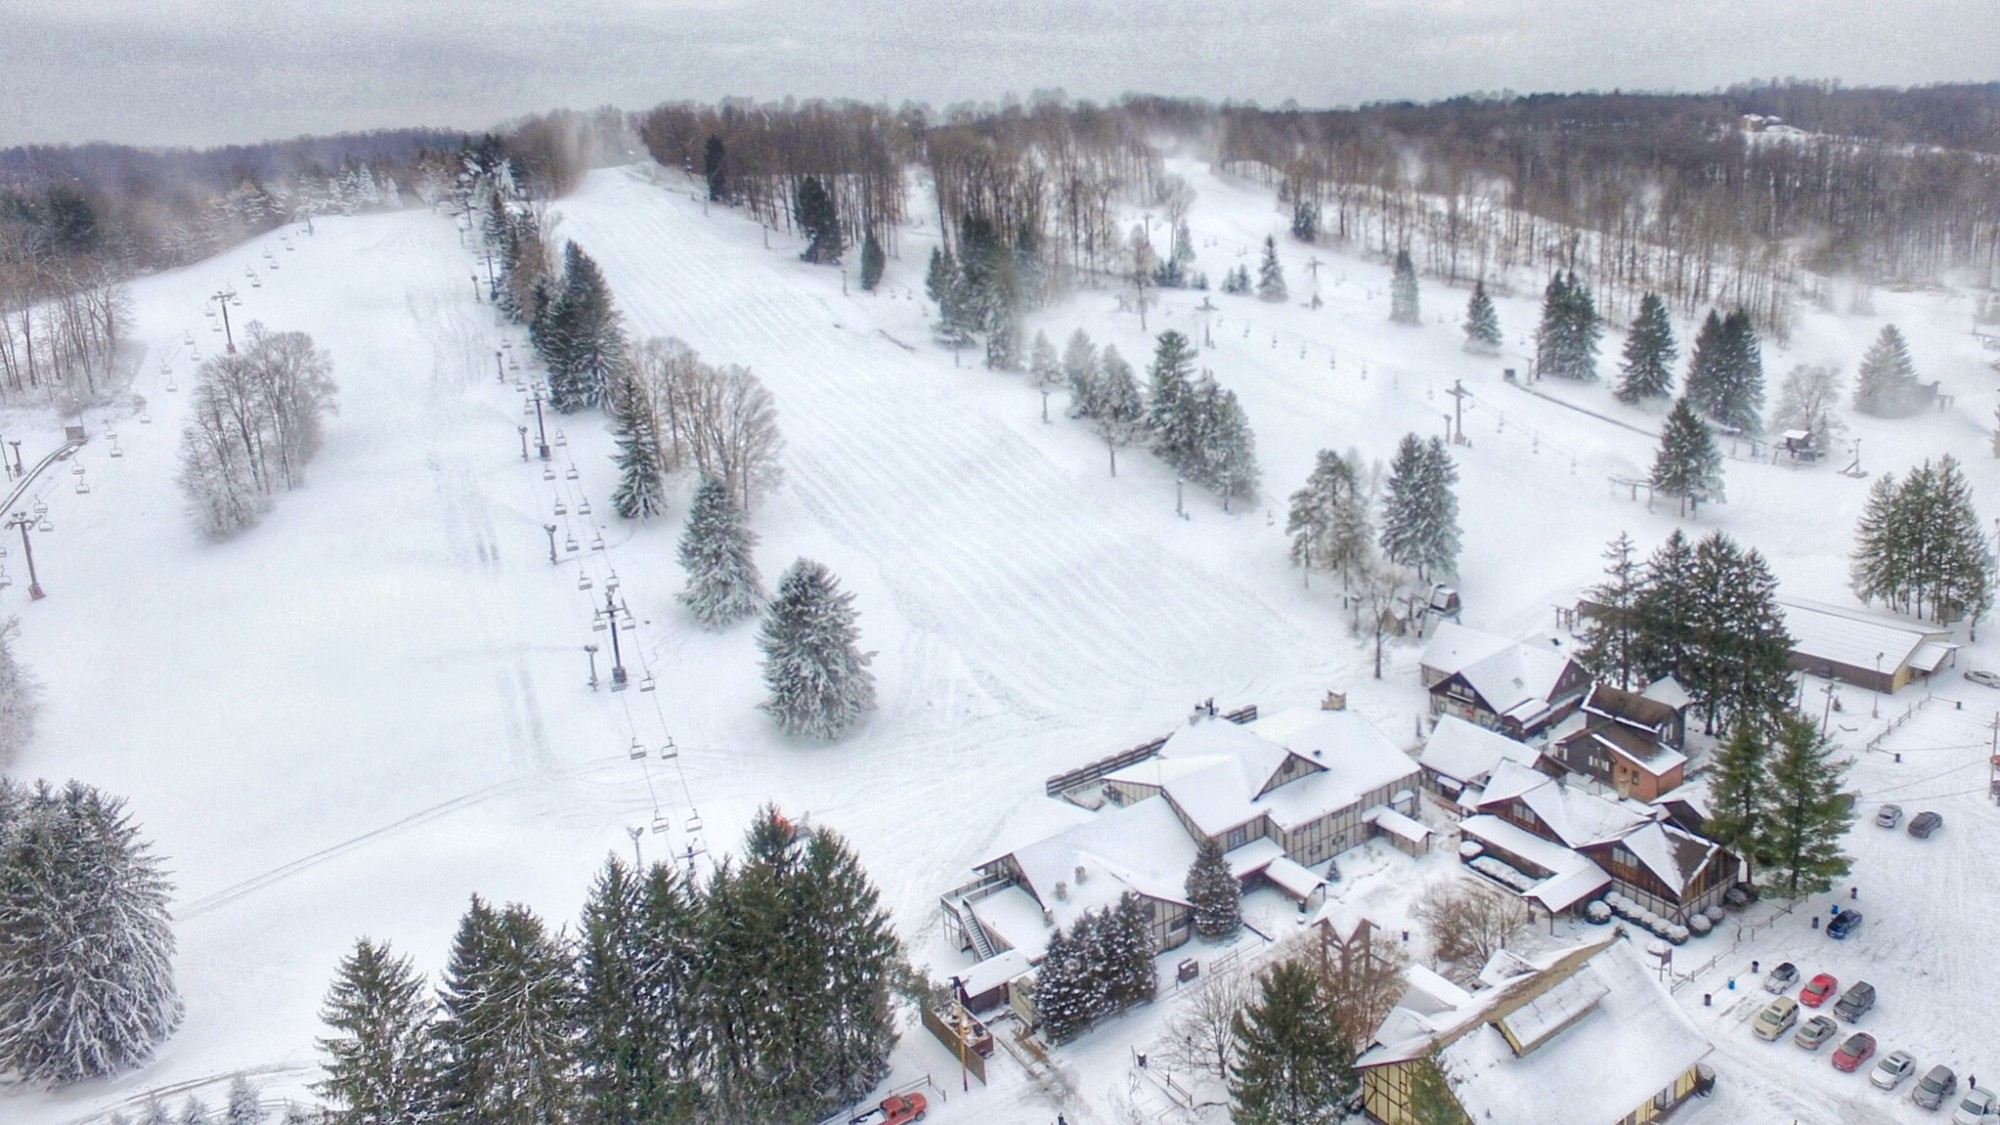 Snow Trails Resort aerial photo during Snowmaking